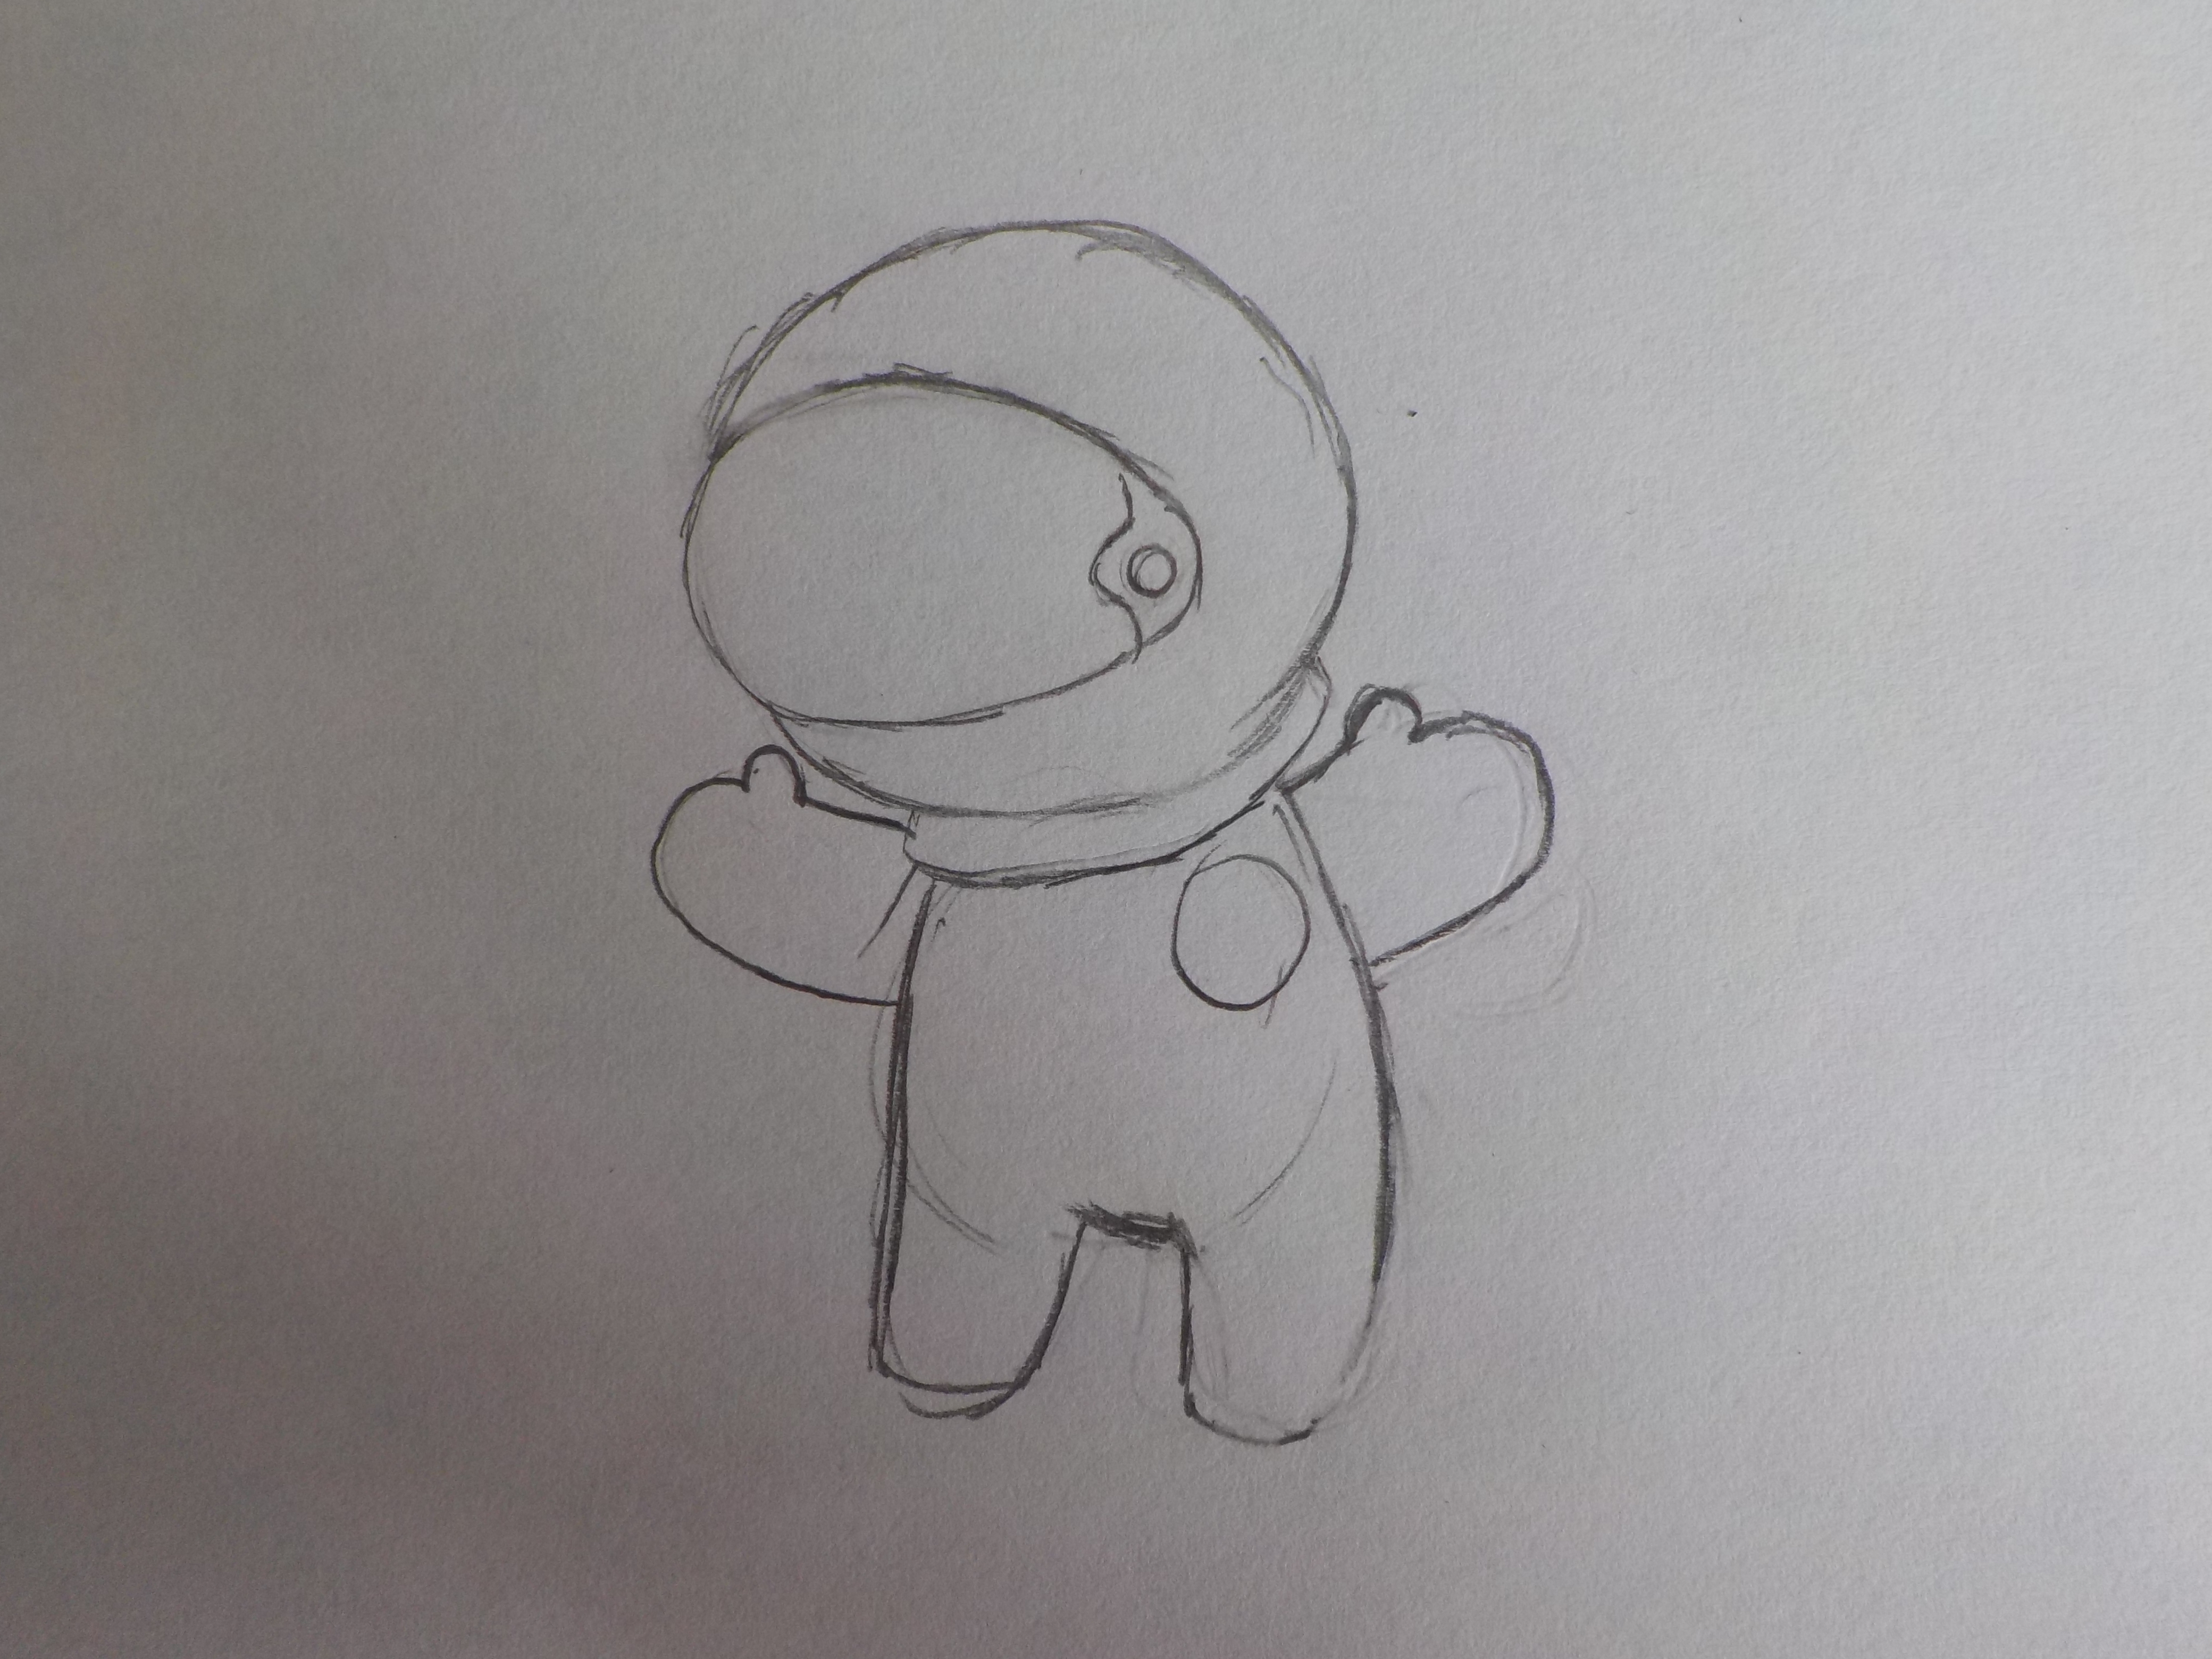 Picture of Step 1: Dibujando El Astronauta/Drawing the Astronaut